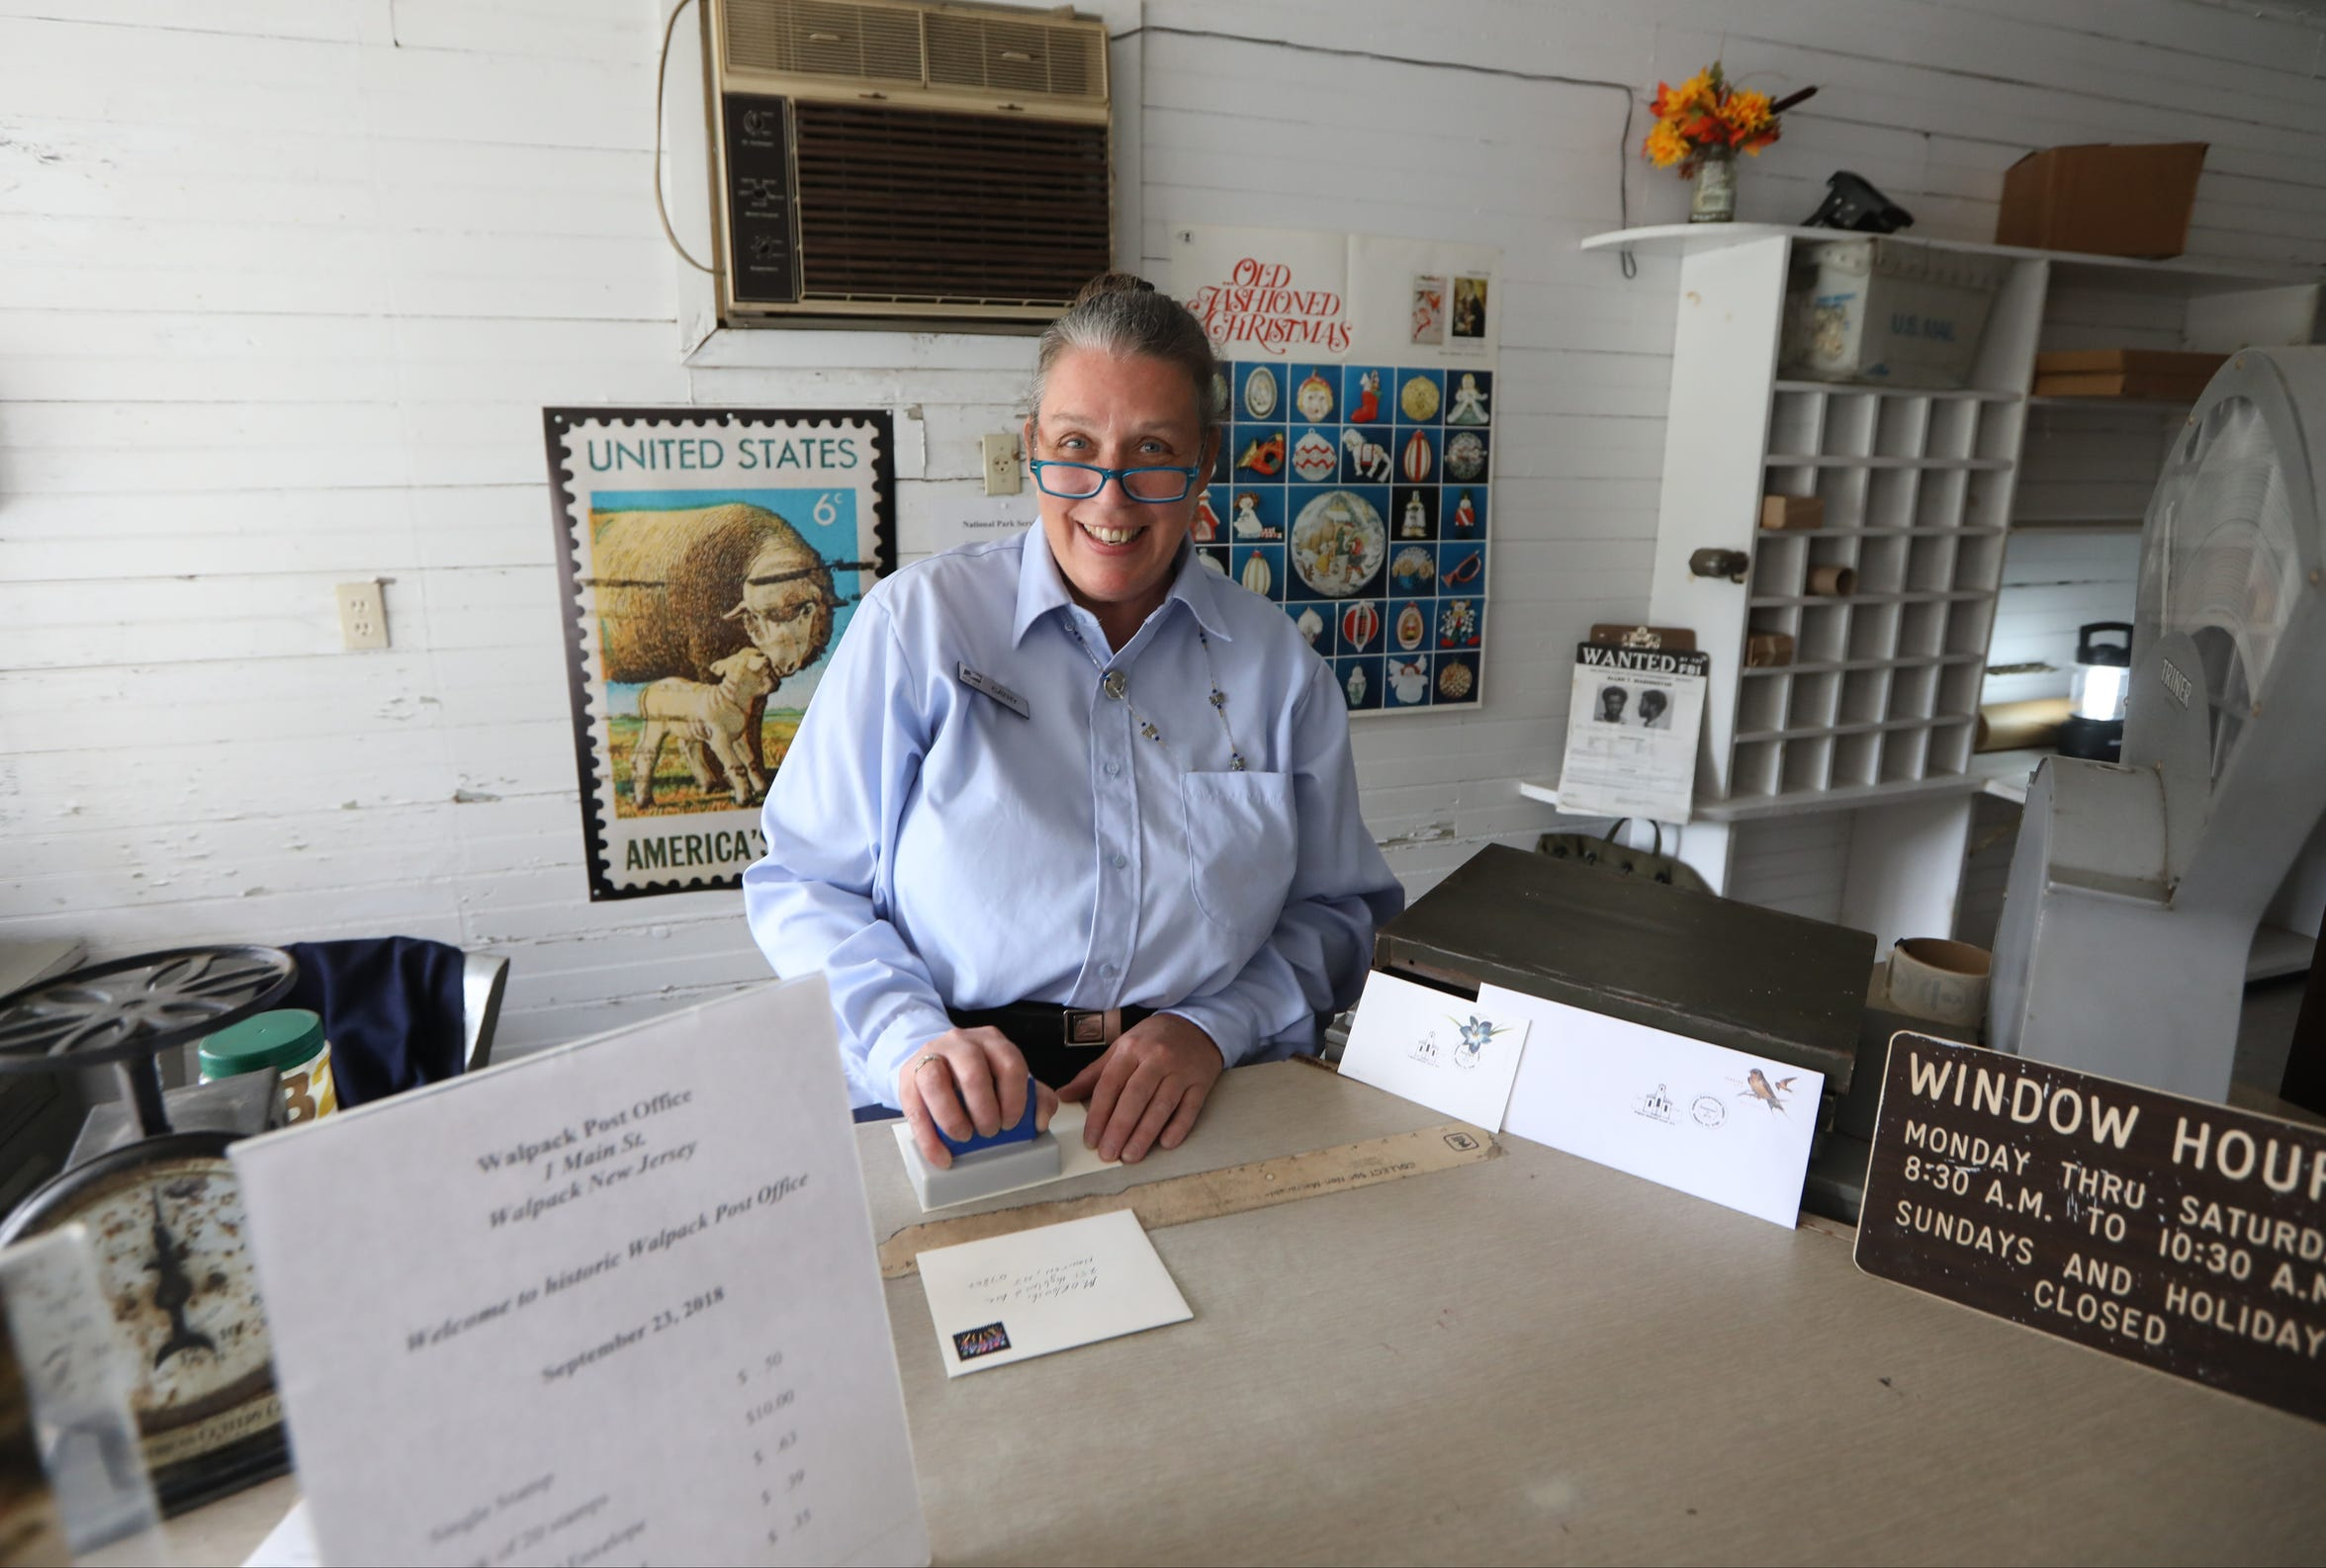 Cathy Rush, who was postmaster of the Walpack post office, and the last official clerk when they closed in 1987, resumed her position for one day to stamp postmarks for Walpack Remembrance Day, Sunday, September 23, 2018.